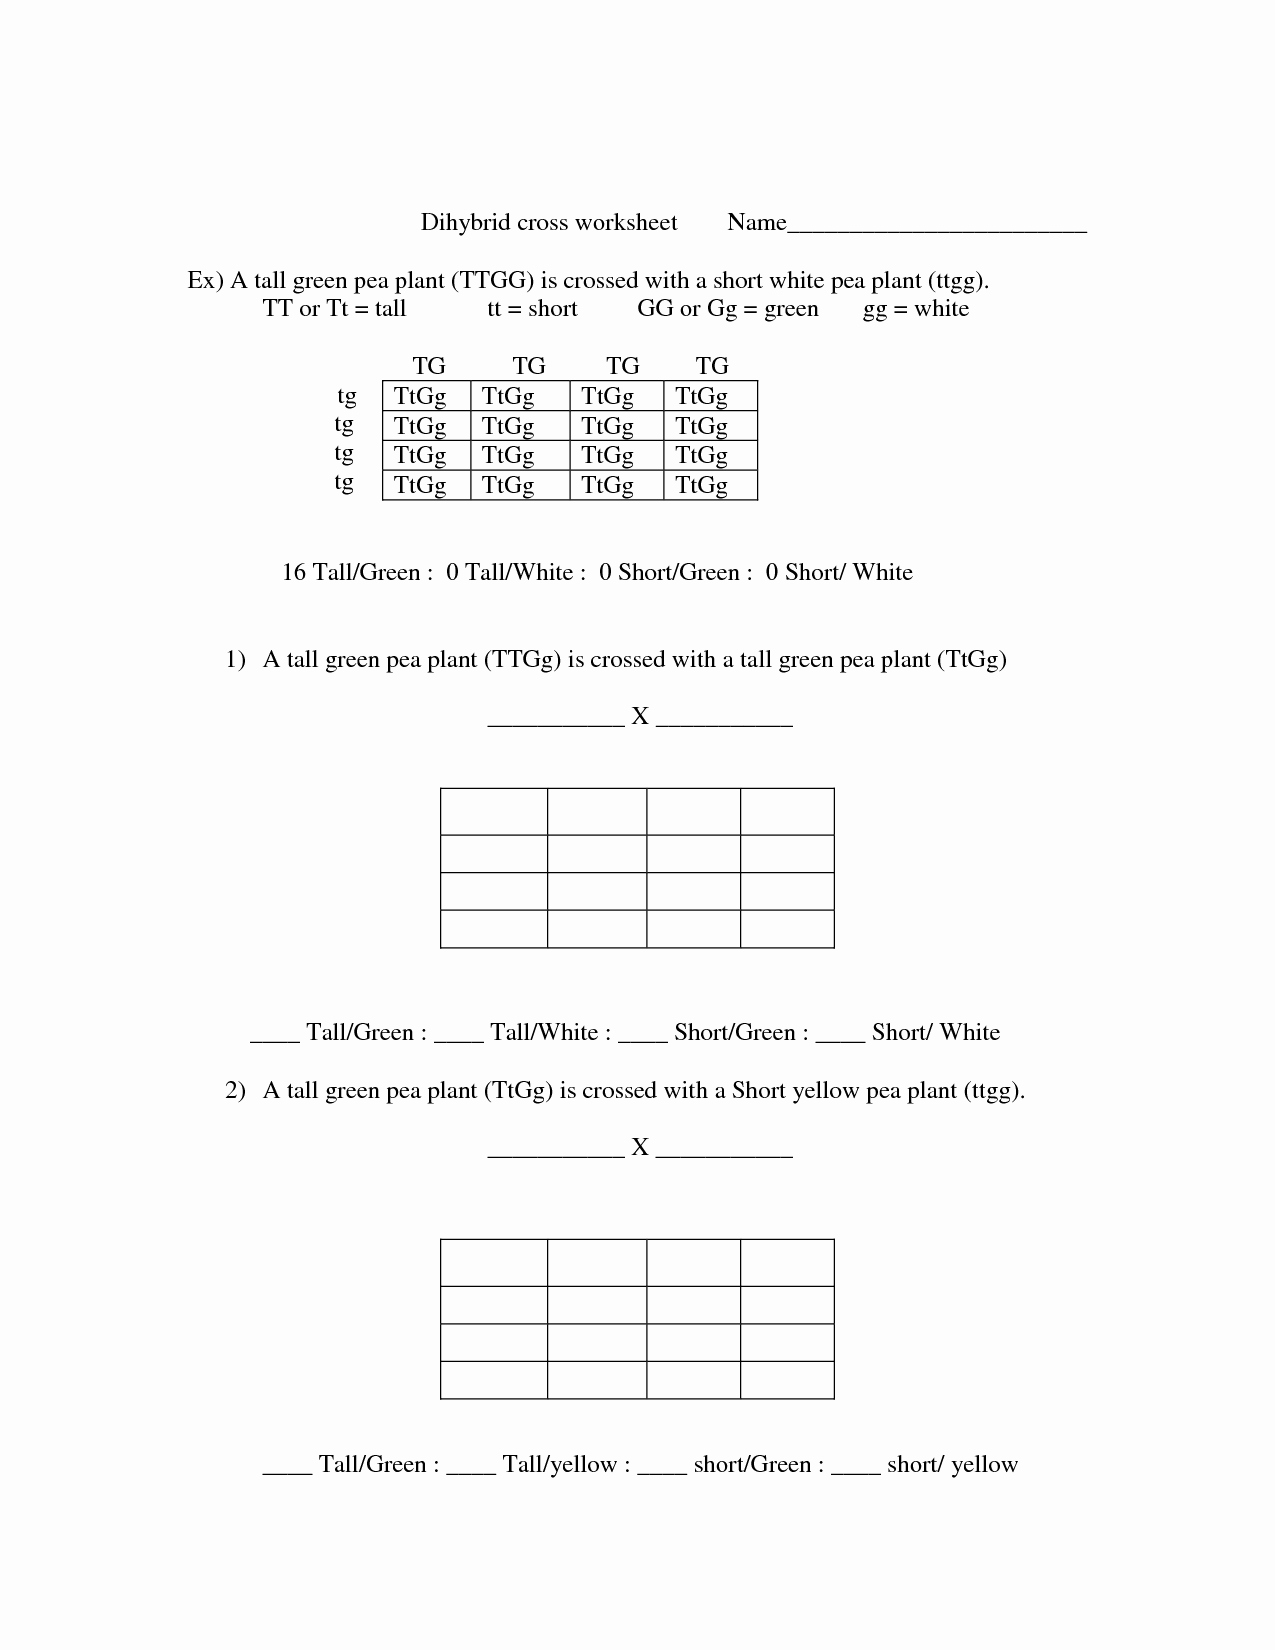 Dihybrid Cross Worksheet Answers Inspirational 17 Best Of Cross Addiction Worksheet Drug